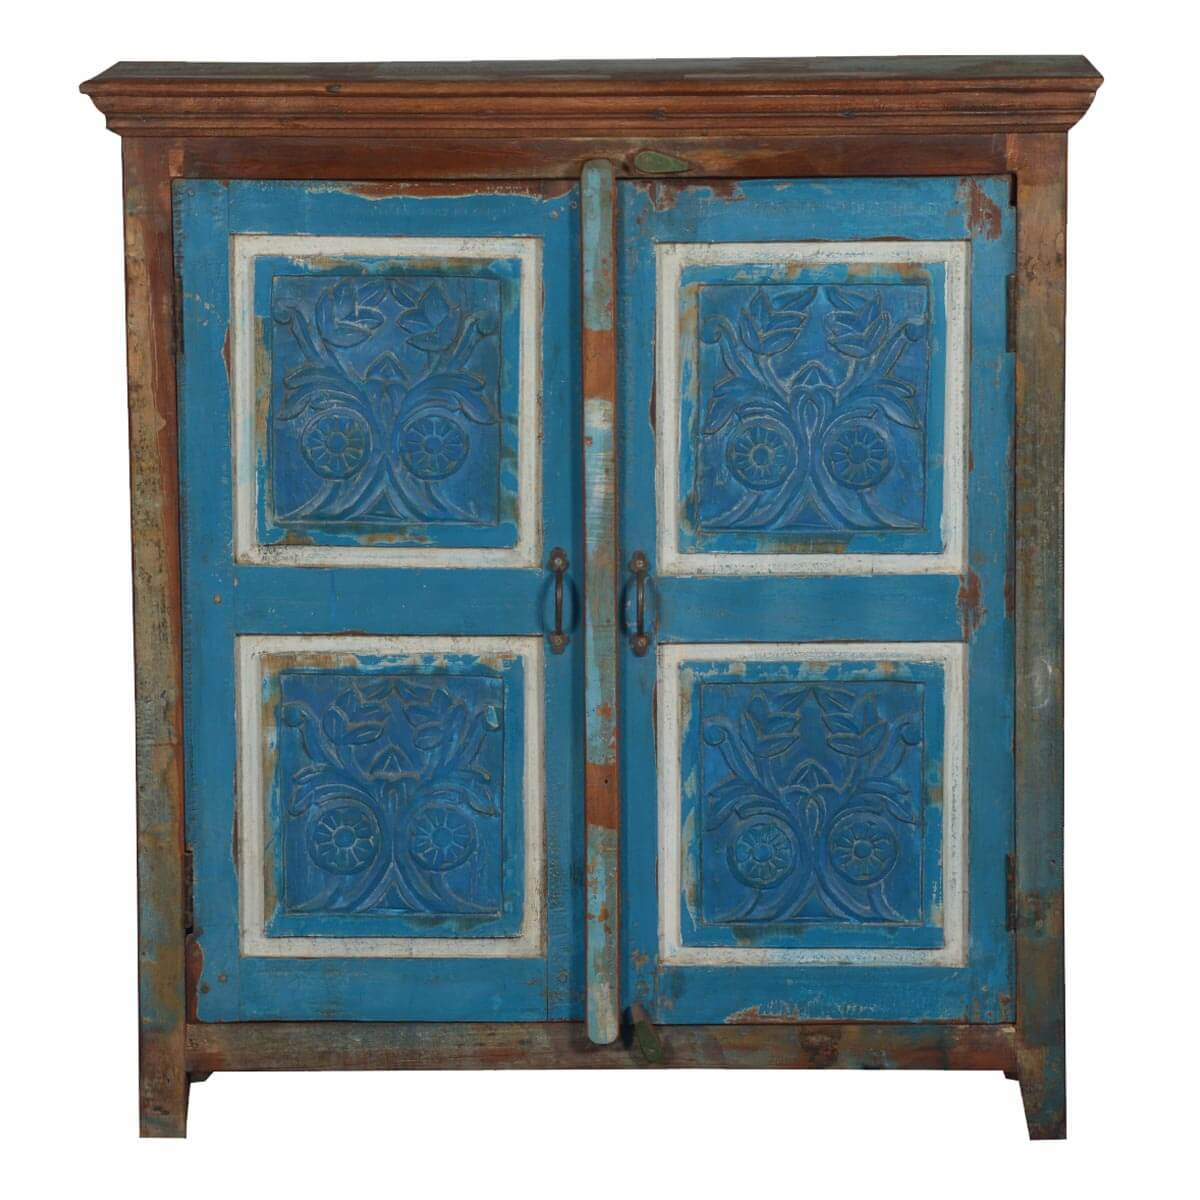 hall console cabinet. Farnham Hand Carved Rustic Reclaimed Wood Hall Console Cabinet E